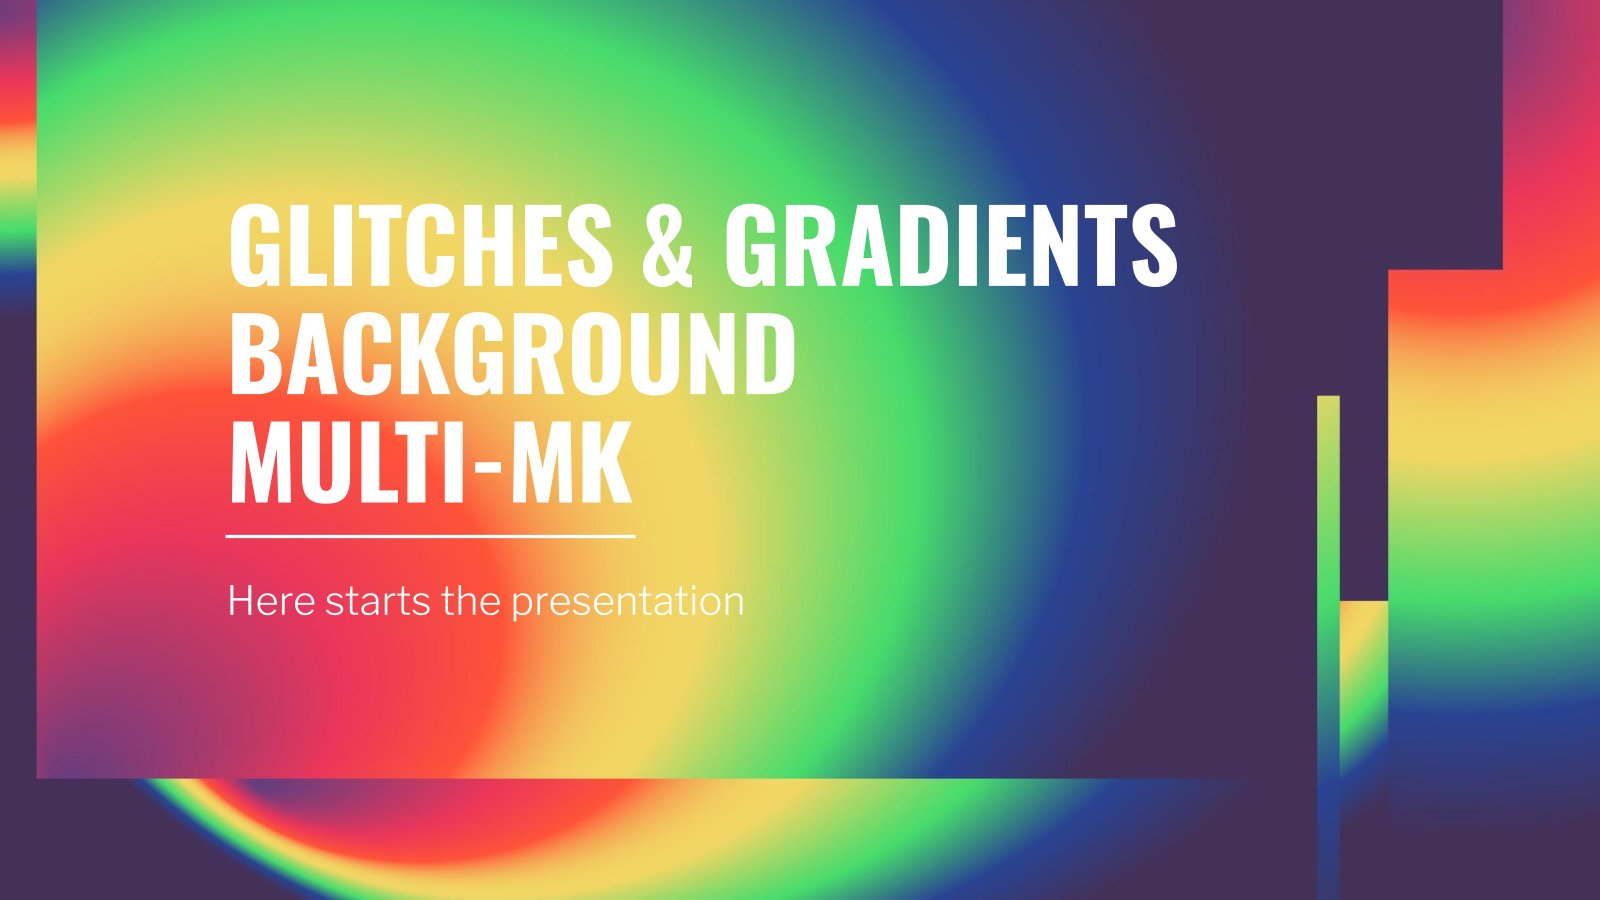 Glitches & Gradients Background Multi-MK presentation template